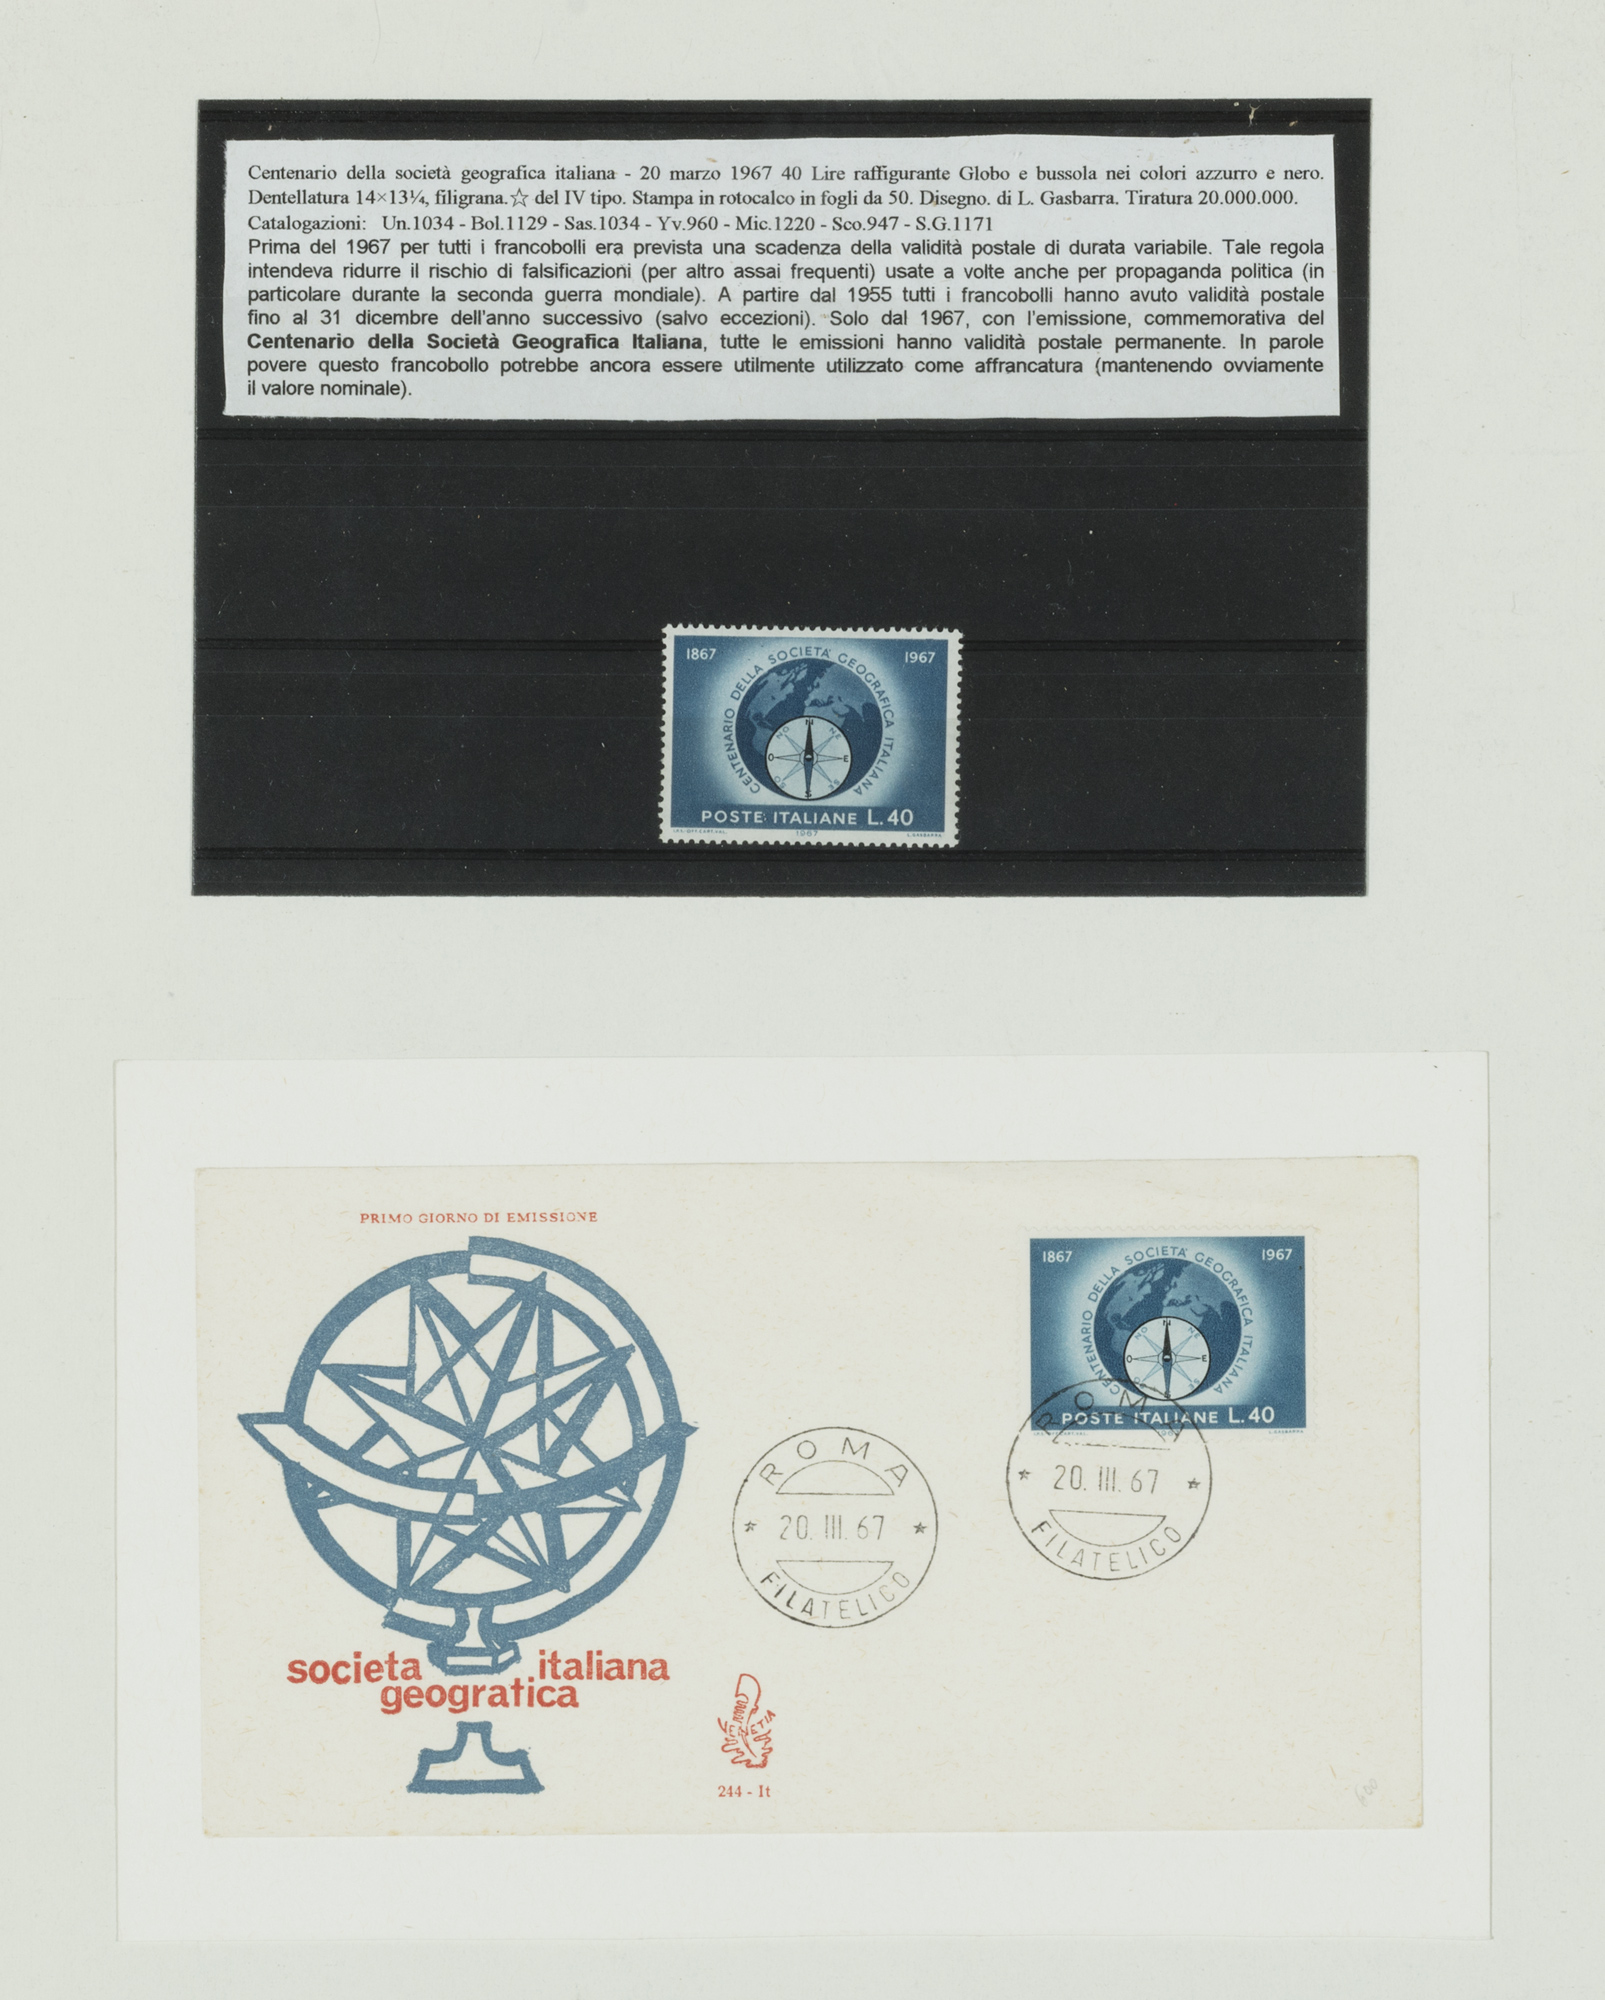 commemorative stamp of the centennial of the Società Geografica Italiana (1867-1967), with envelope, framed, 34 x 28 cm (frame size); commemorative stamp of the International Geophysical Year (1957-1958) and of the fiftieth anniversary of the discovery of the North Pole (1909-1959), framed, 28 x 24 cm (frame size)